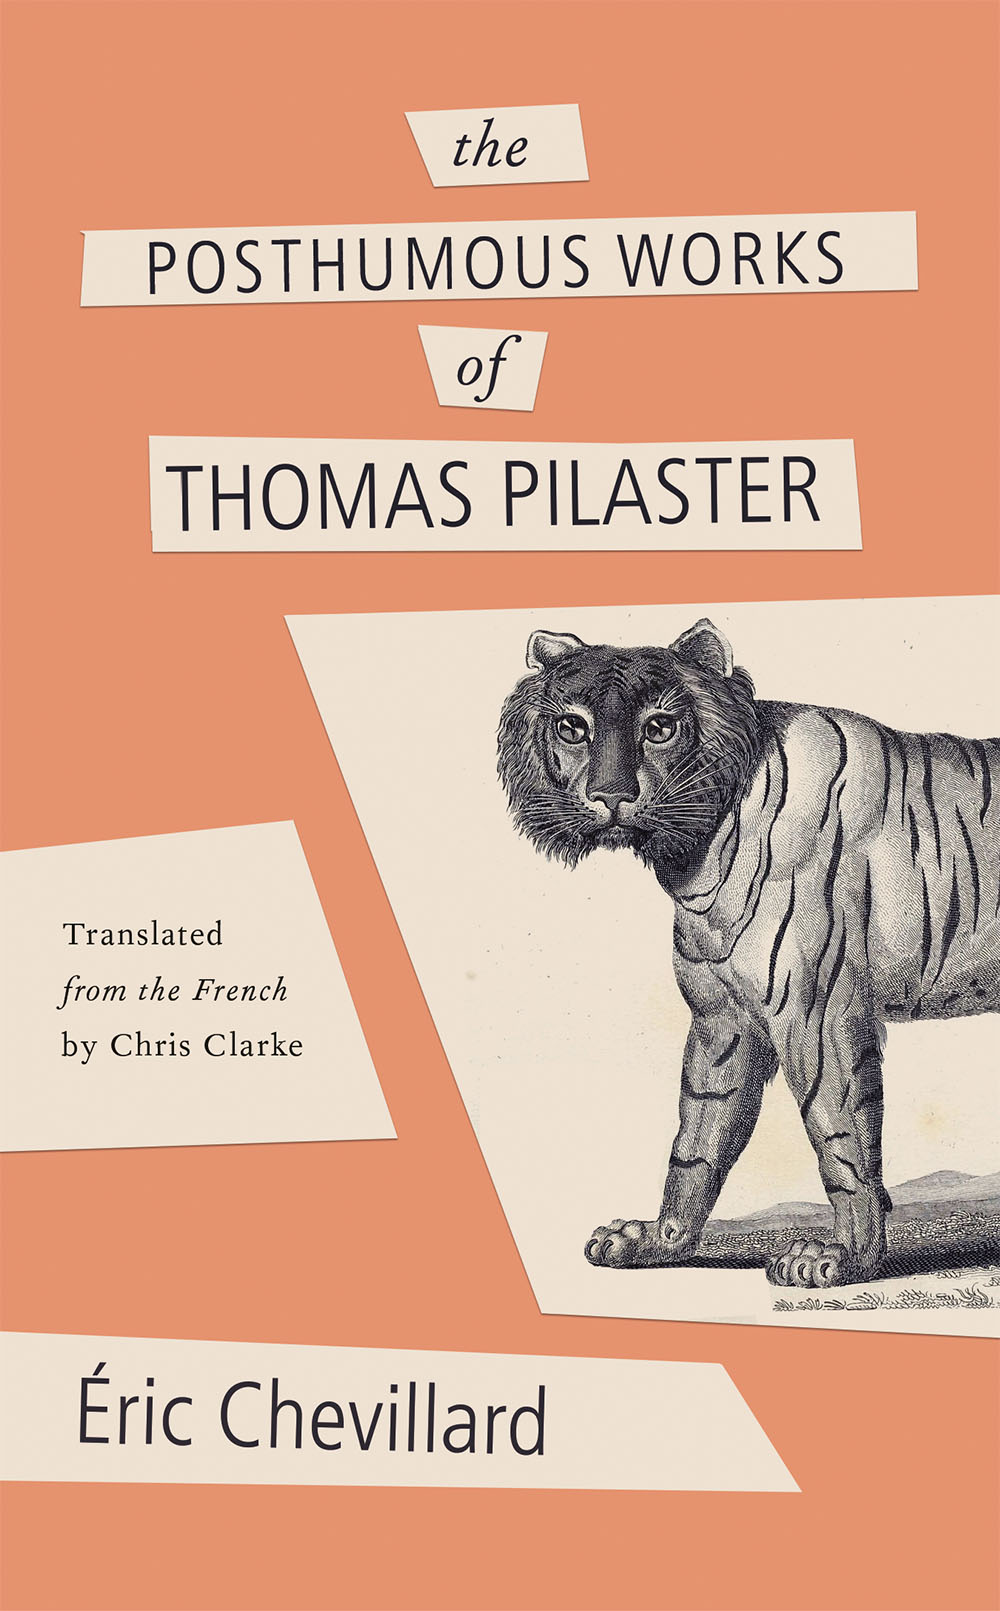 The Posthumous Works of Thomas Pilaster